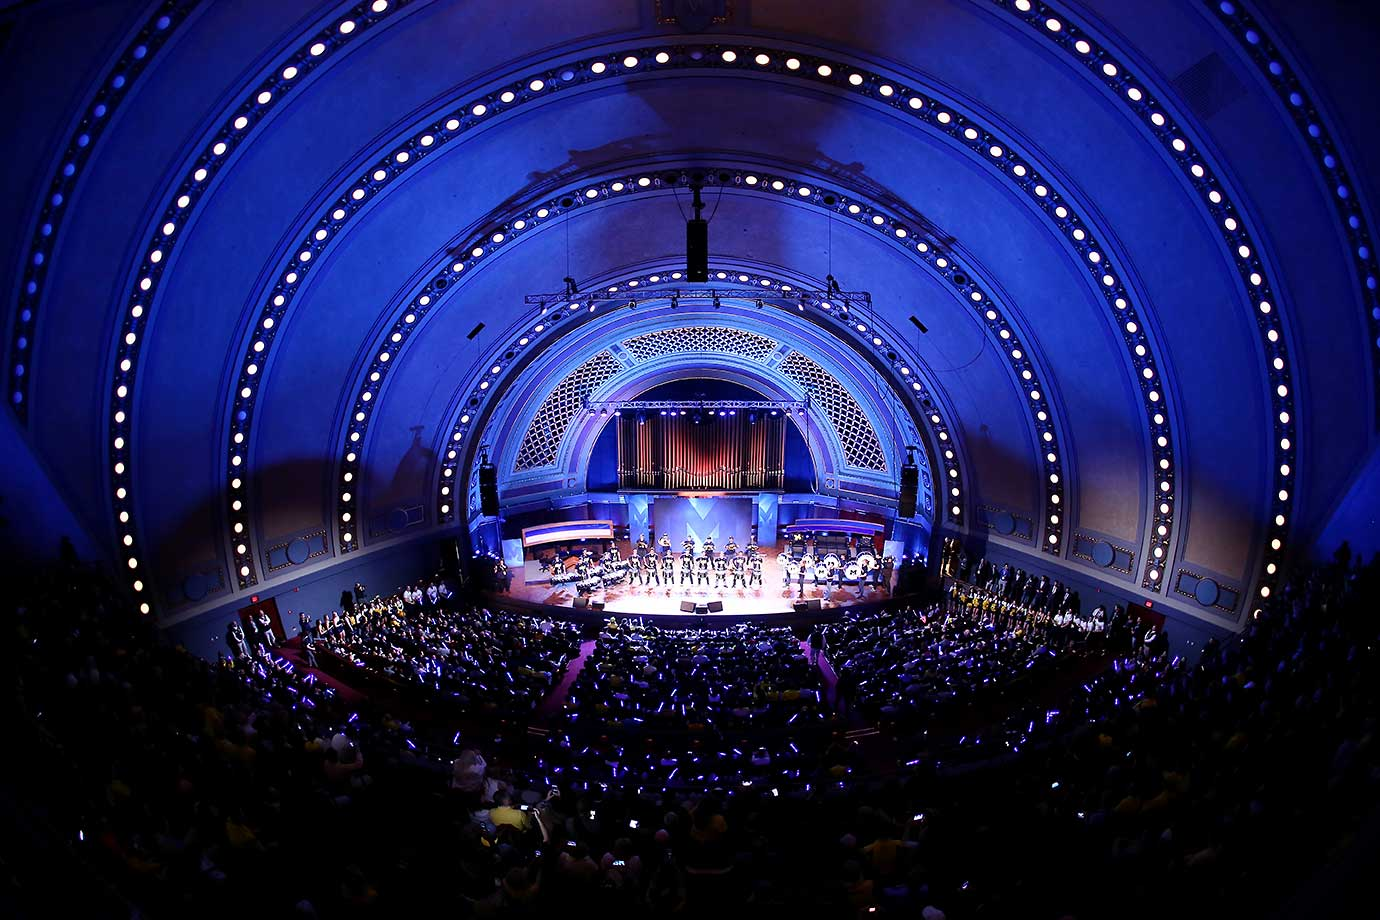 General view of Hill Auditorium during the Michigan Signing of the Stars event in Ann Arbor, Mich.